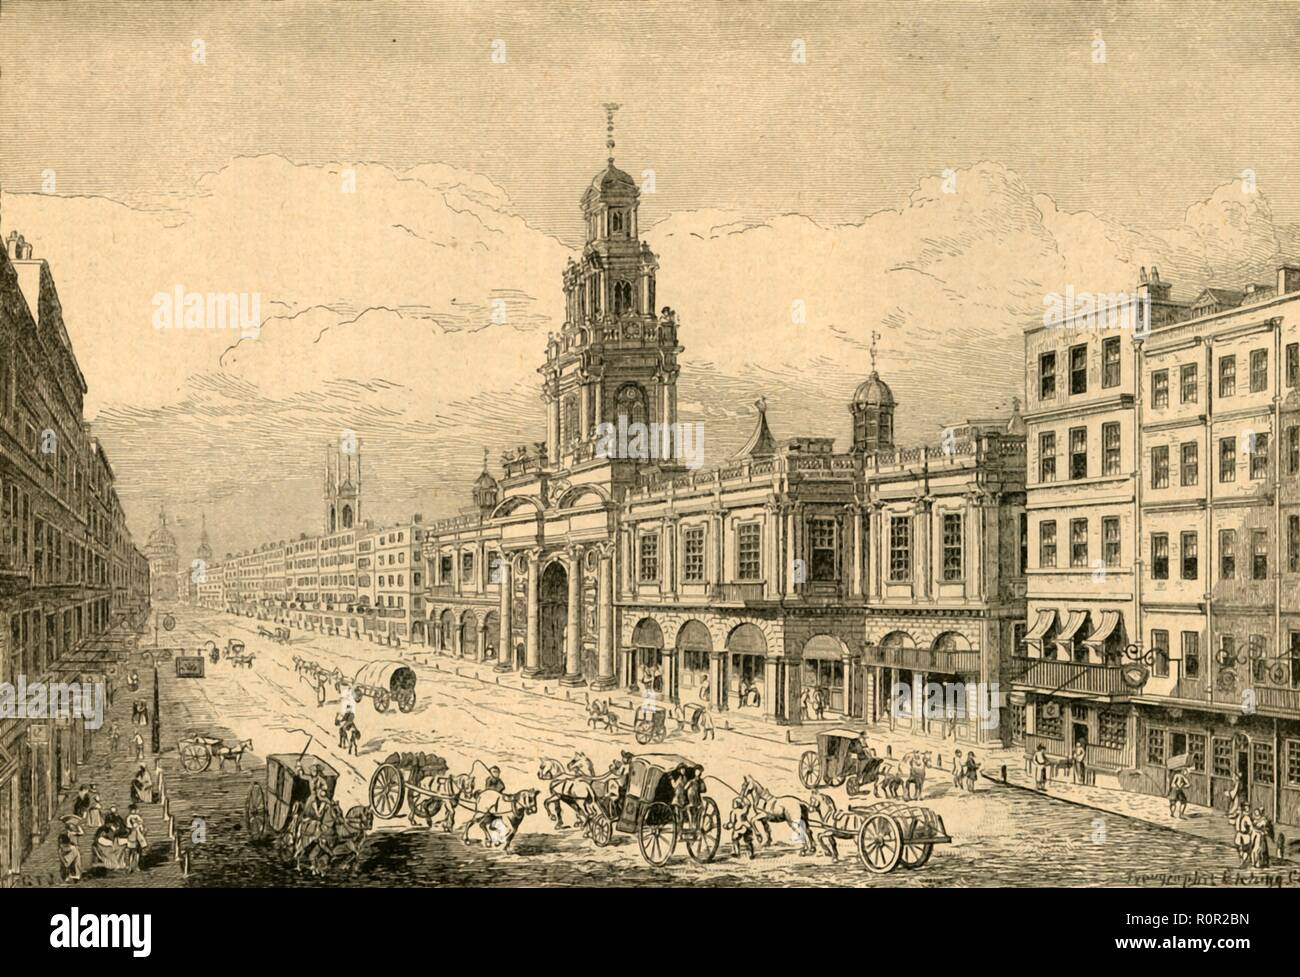 'The Second Royal Exchange, Cornhill', (1897). The Royal Exchange was founded in the 16th century to act as a centre of commerce for the City of London. It was opened in 1571 by Queen Elizabeth I who awarded the building its royal title and a licence to sell alcohol. The first building was destroyed in the Great Fire of London in 1666, and was rebuilt by Edward Jarman in 1669, (seen here). This second building was also destroyed by a fire, in 1838. From Old and New London, Volume I, by Walter Thornbury. [Cassell and Company, Limited, London, Paris & Melbourne, 1897] - Stock Image